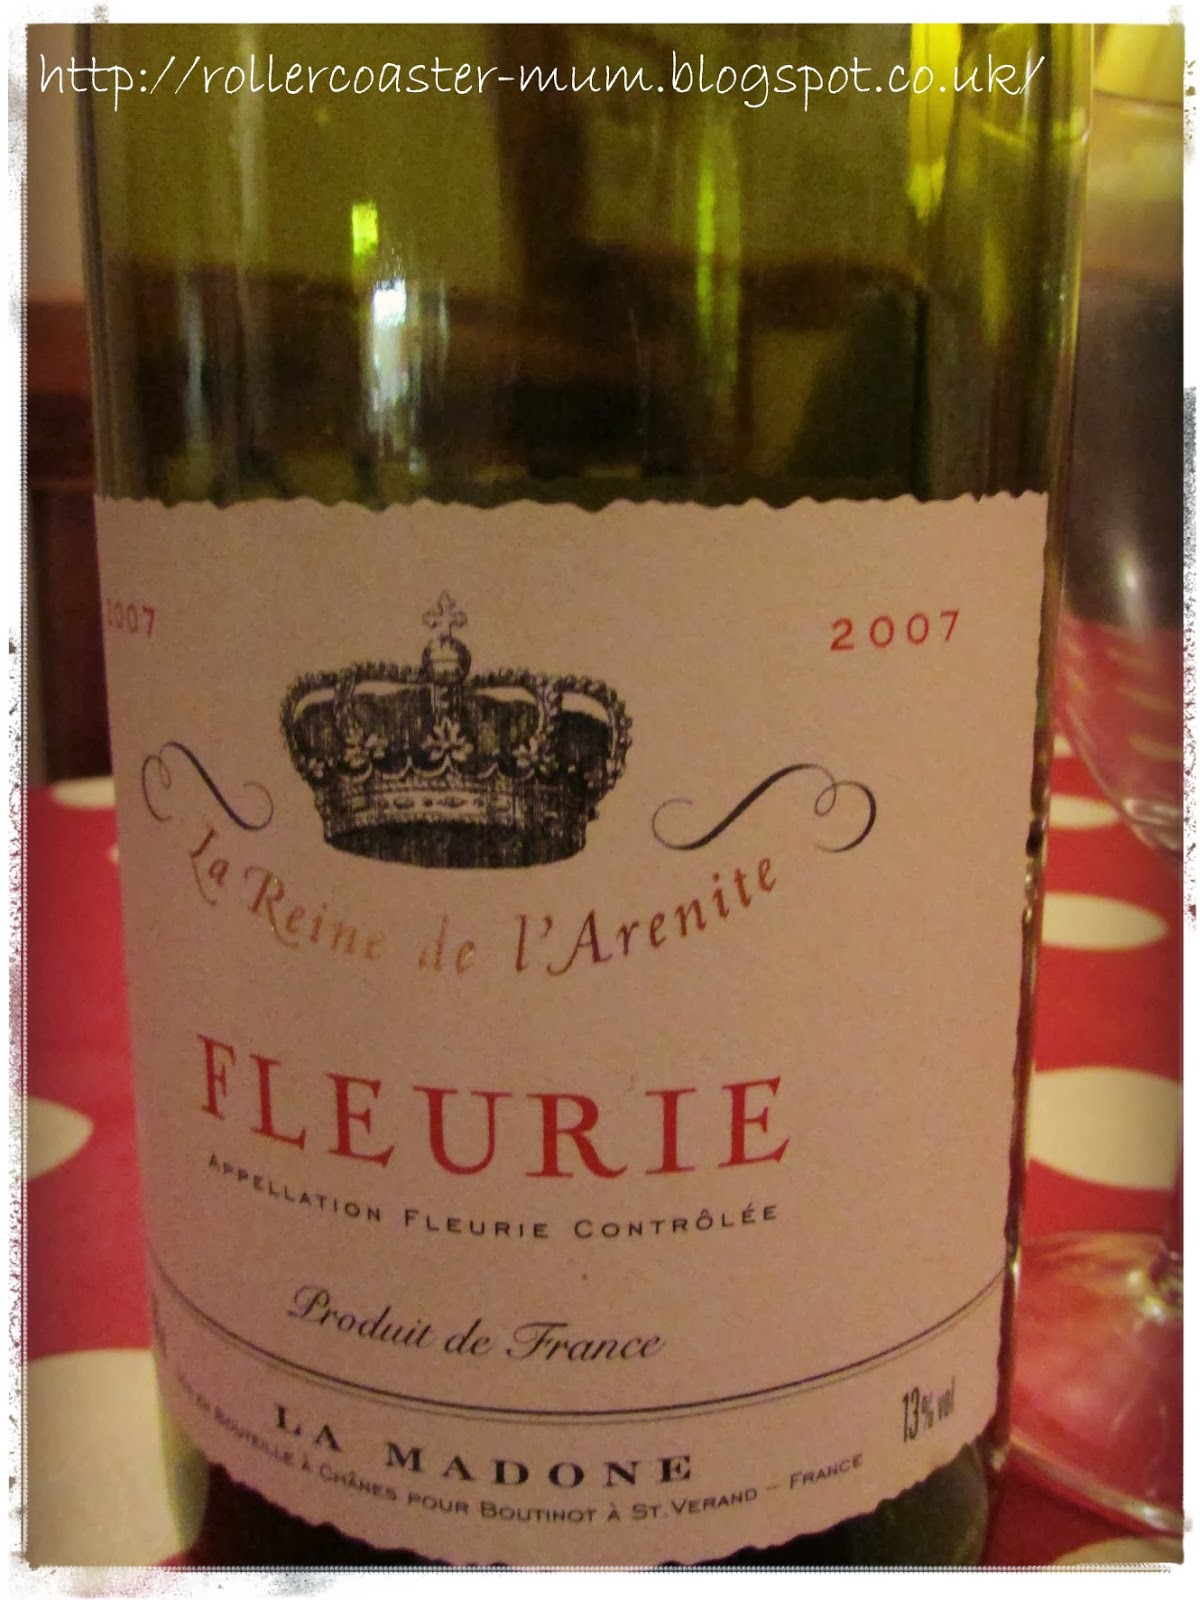 Fleurie red wine - empty bottle